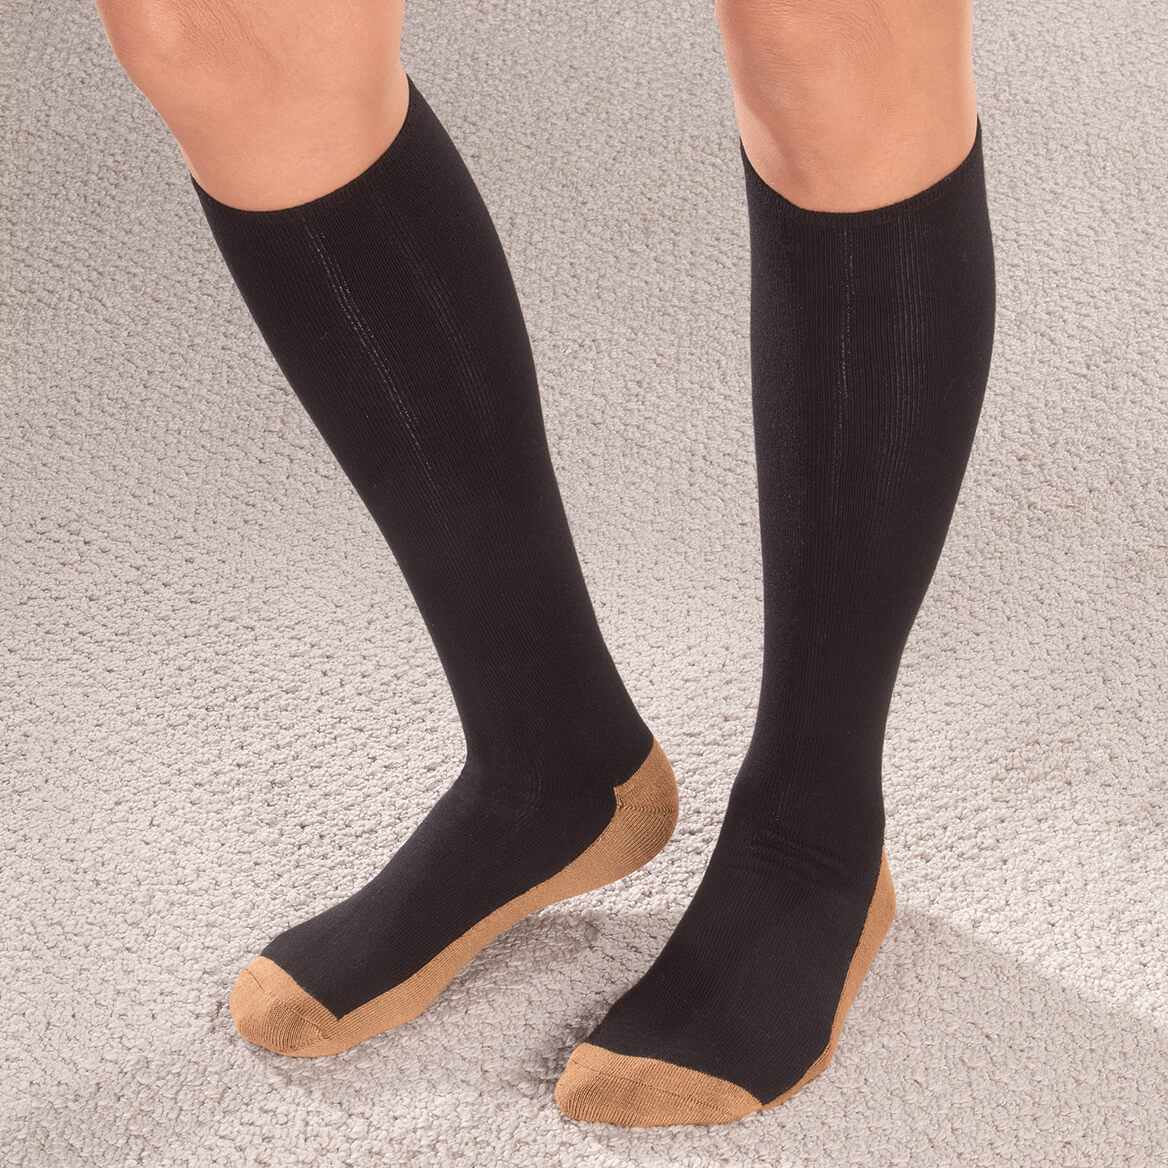 Copper Compression Socks by Silver Steps™, 1 Pair-352491